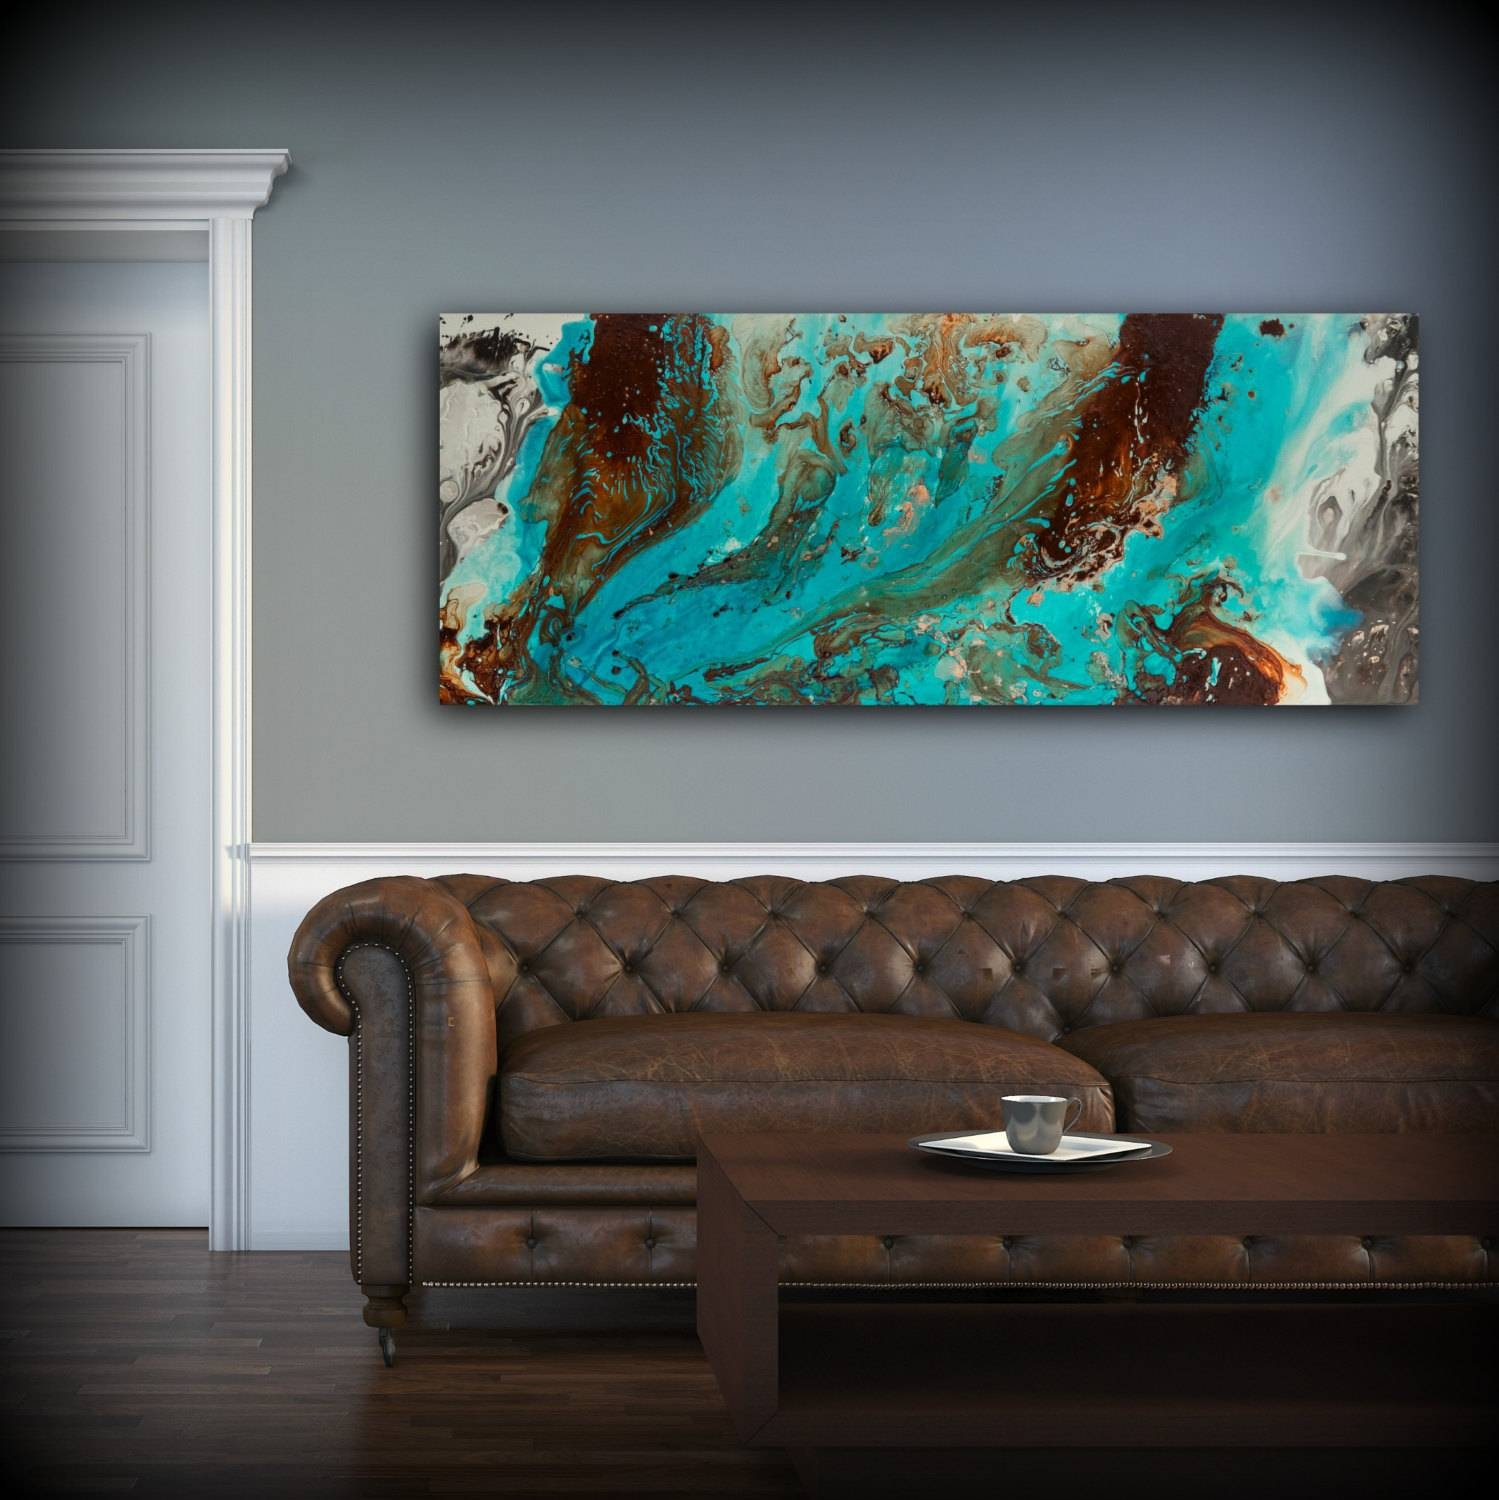 Aqua Print, Blue And Brown Wall Art Decor, Colourful, Bohemian Art Pertaining To Best And Newest Blue Wall Art (View 3 of 20)